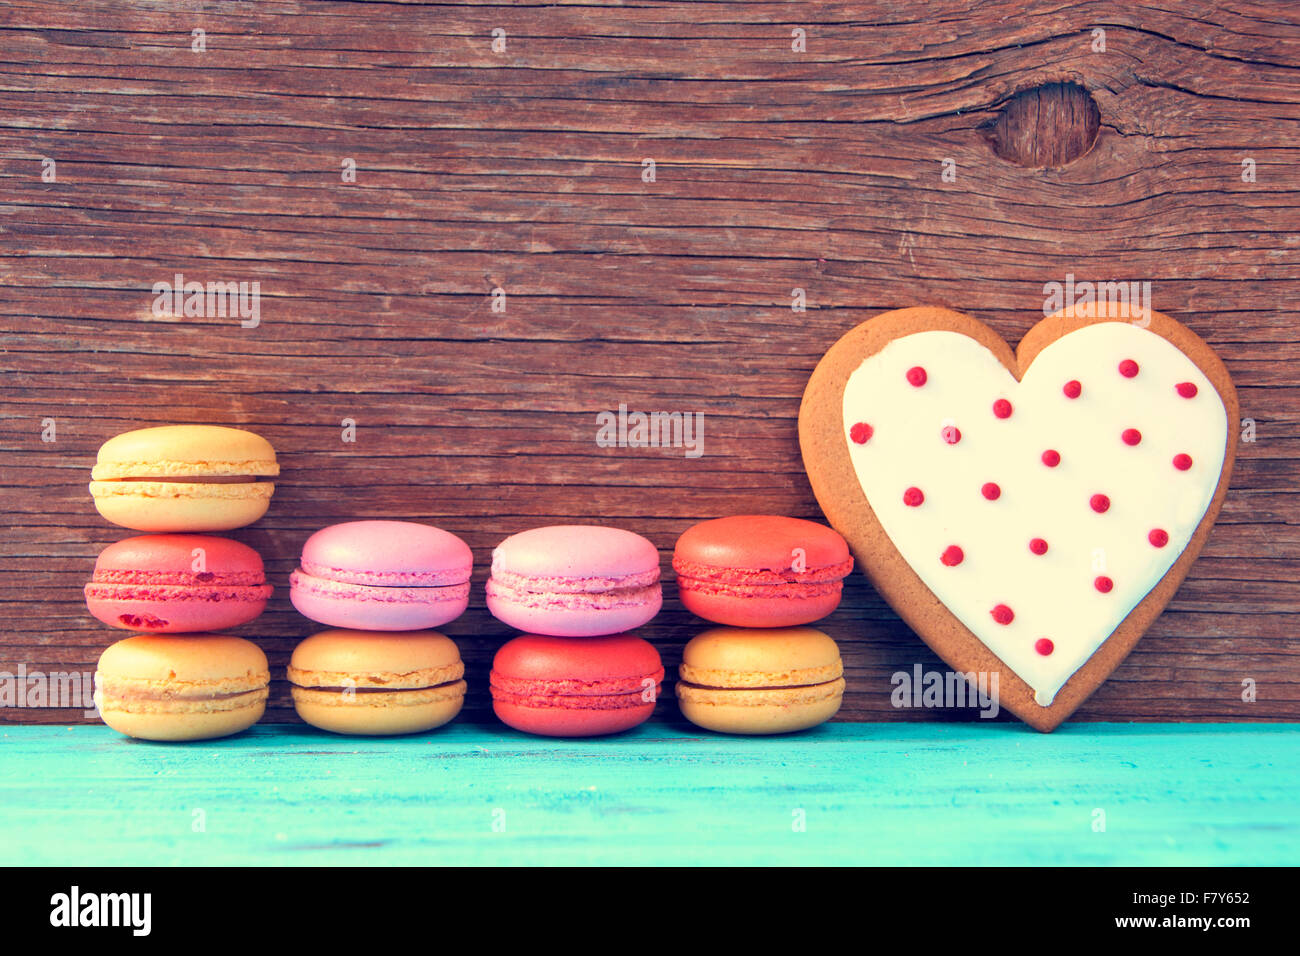 some appetizing macarons with different colors and flavors and a homemade heart-shaped cookie on a blue wooden surface, - Stock Image